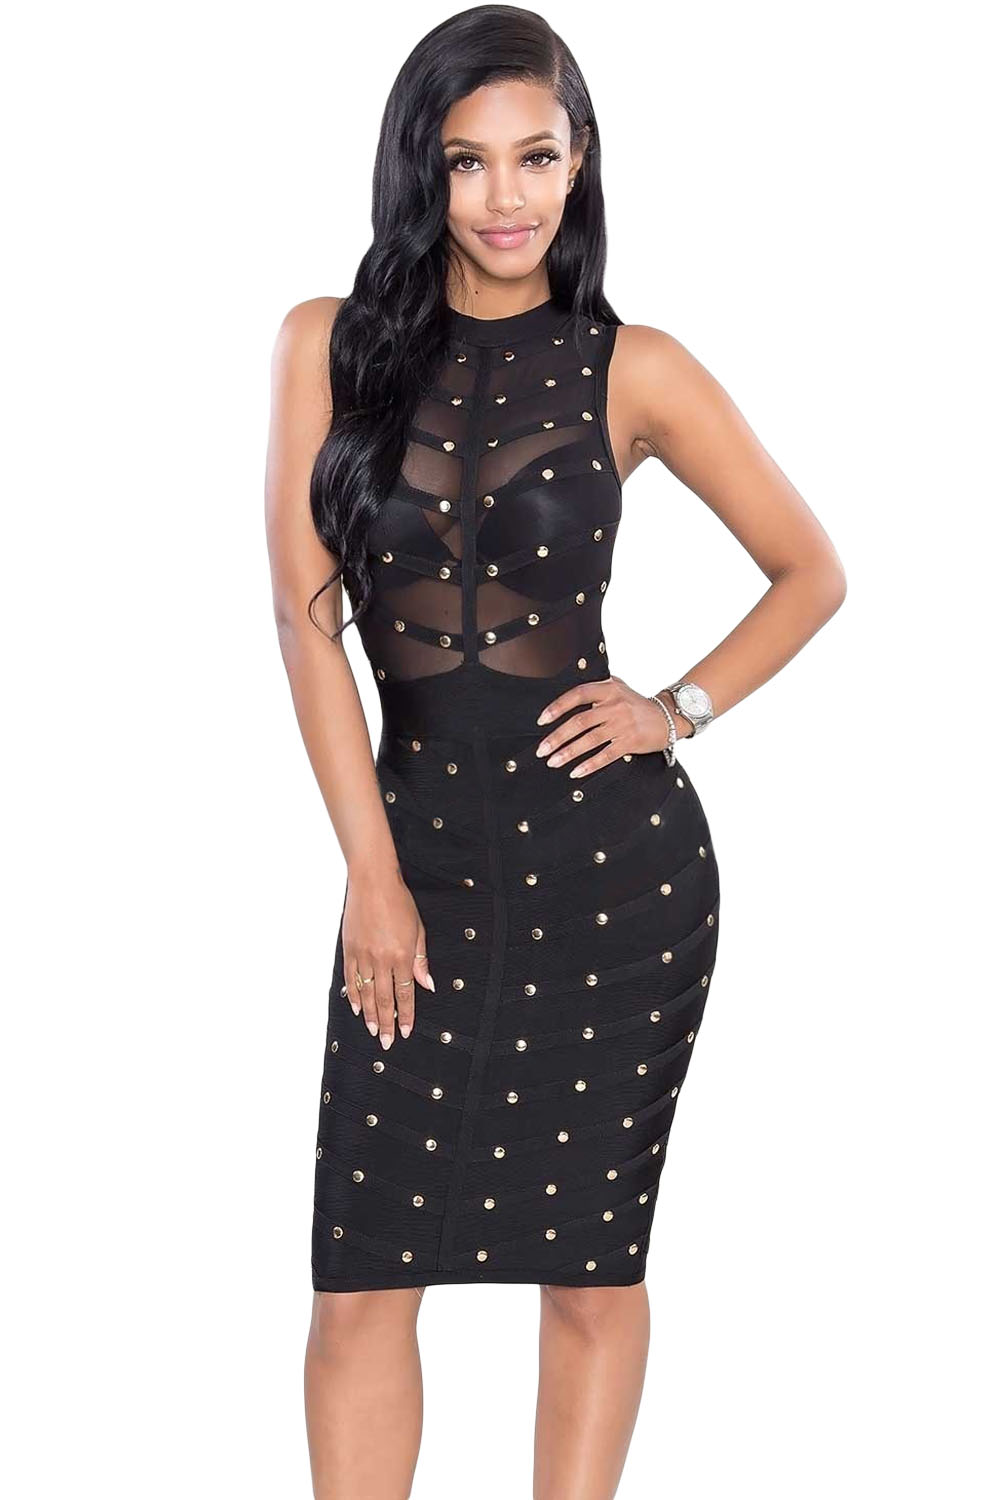 Black Studded Bandage Dress Charming Wear